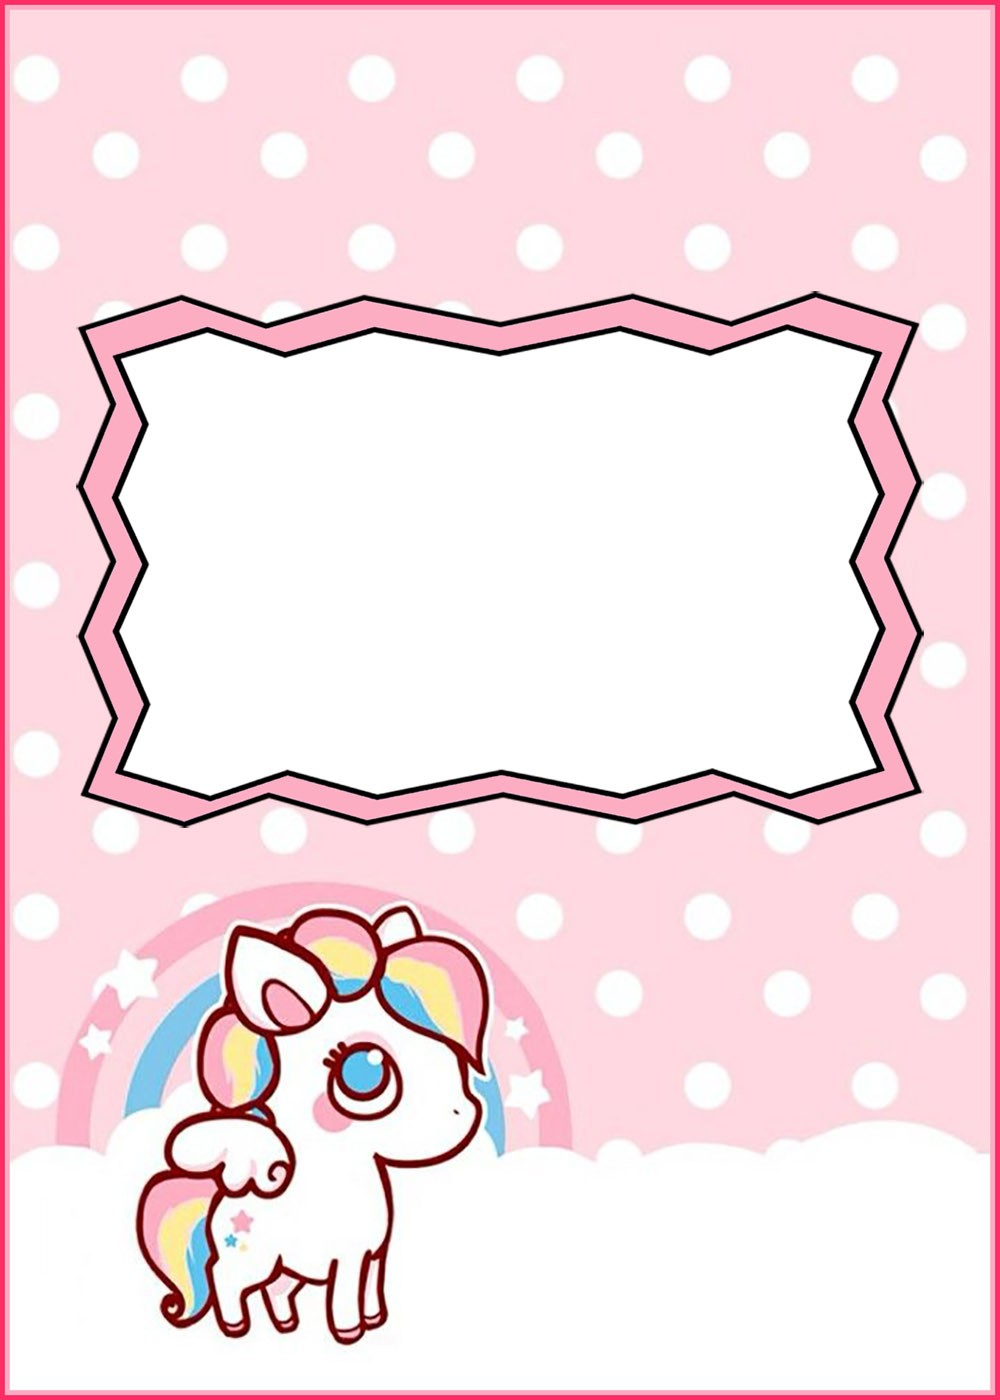 It is an image of Unicorn Template Printable intended for unicorn birthday banner